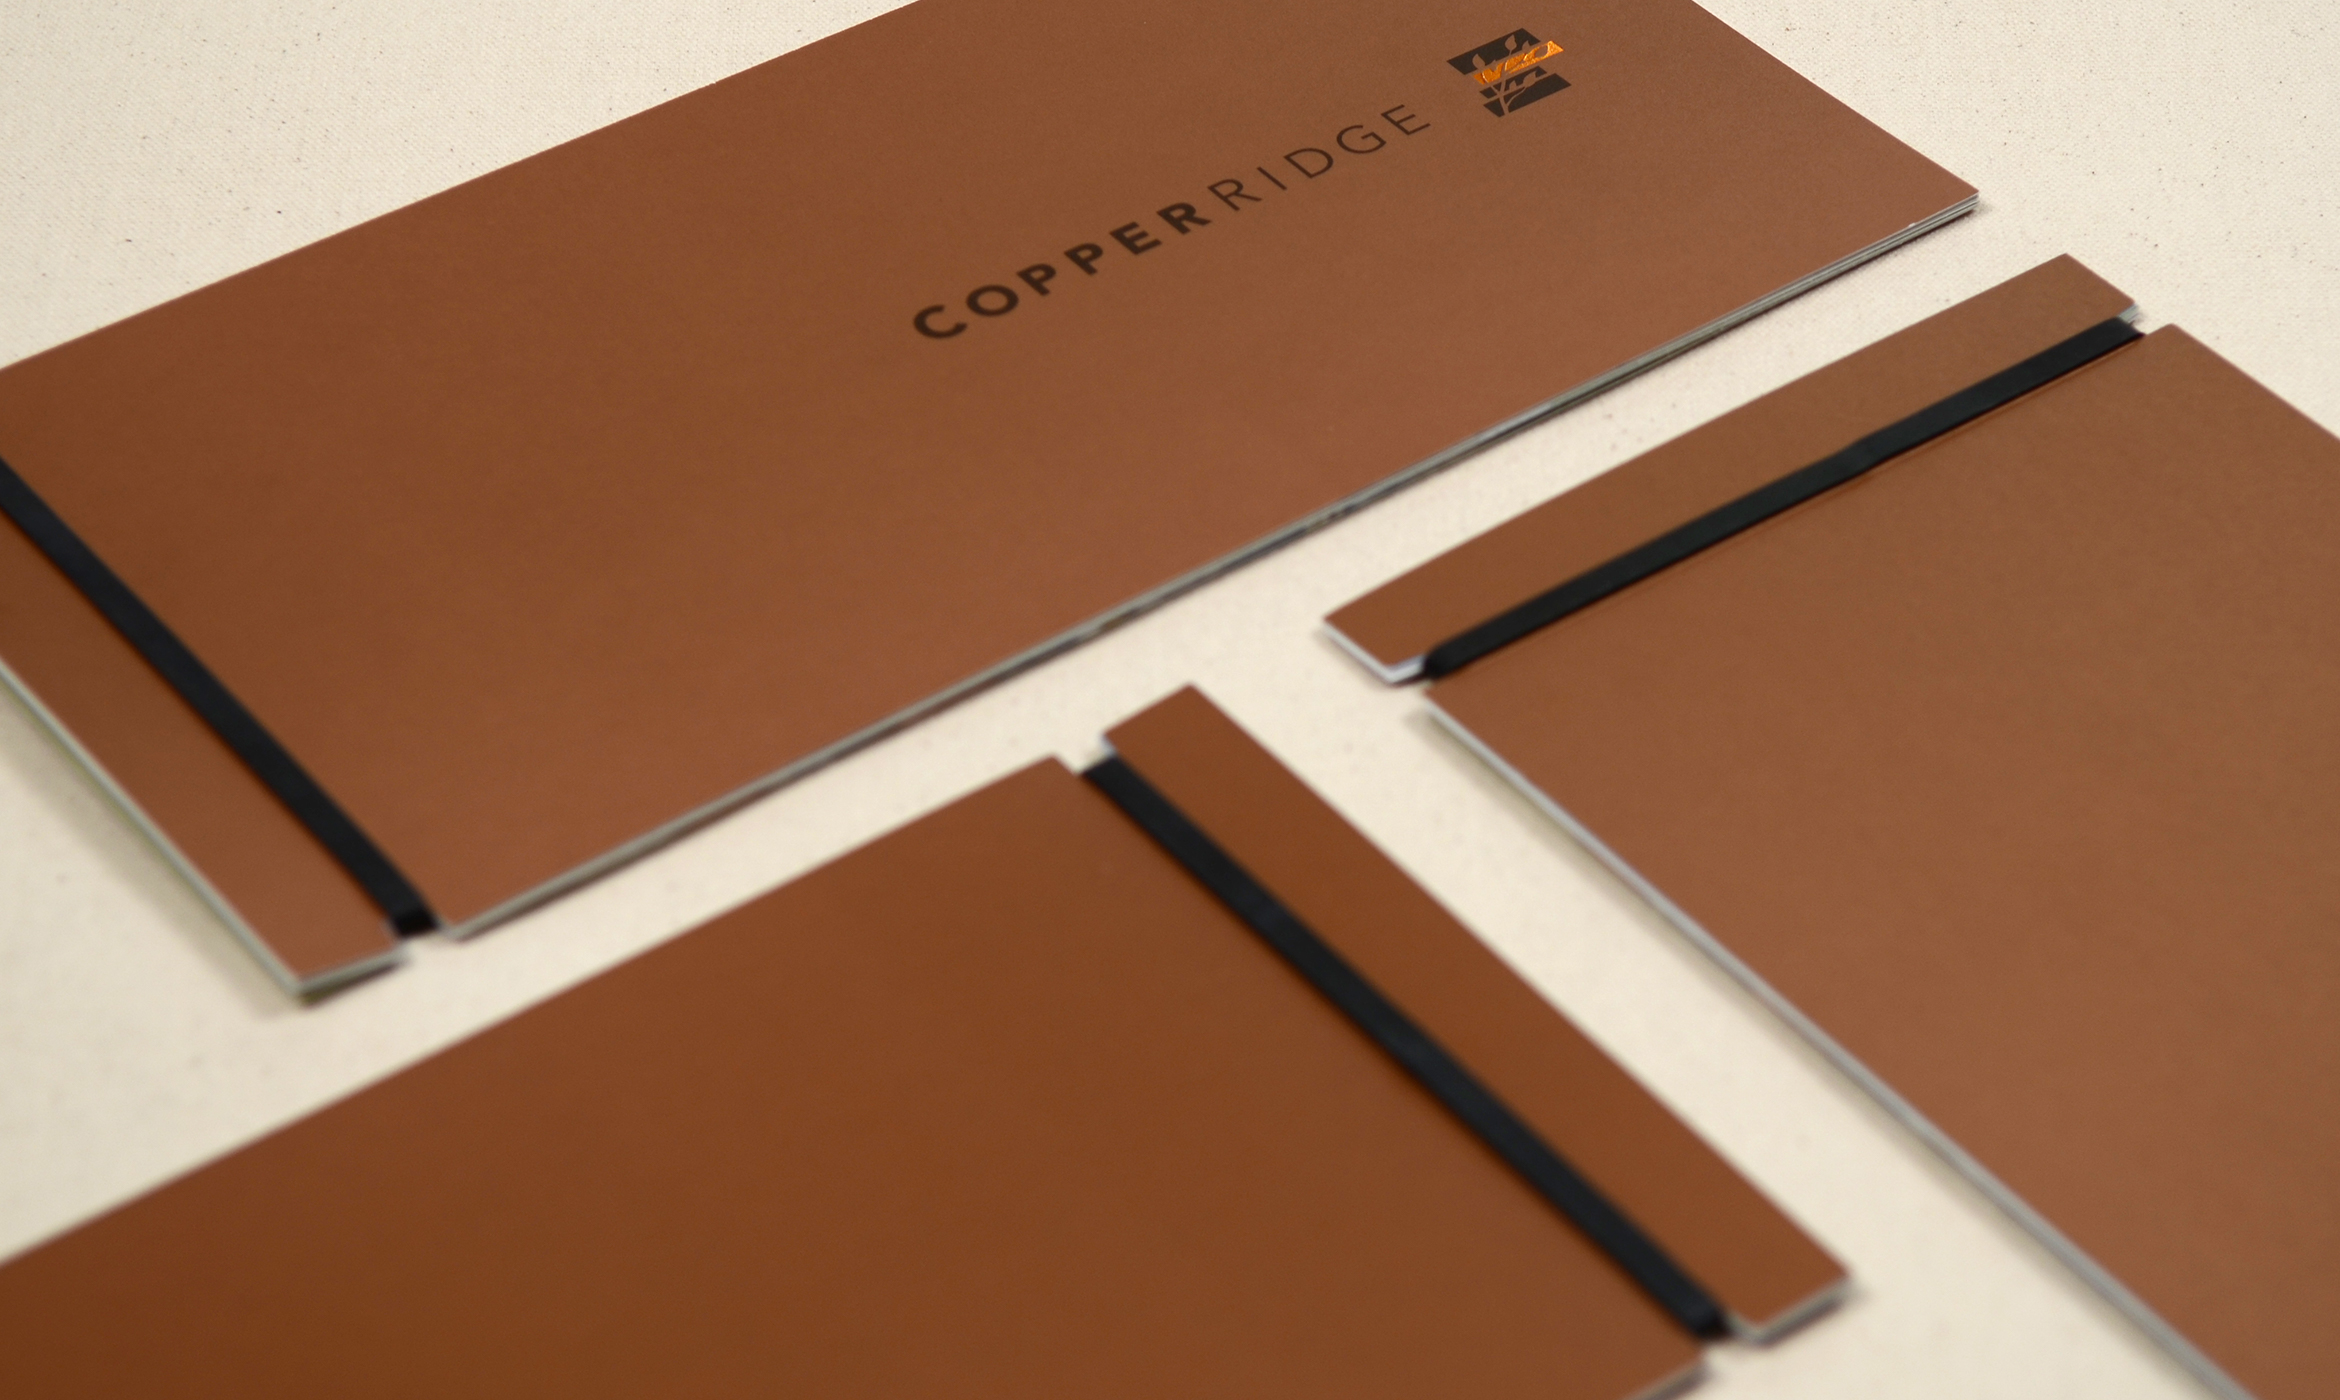 Copper Ridge brochure covers